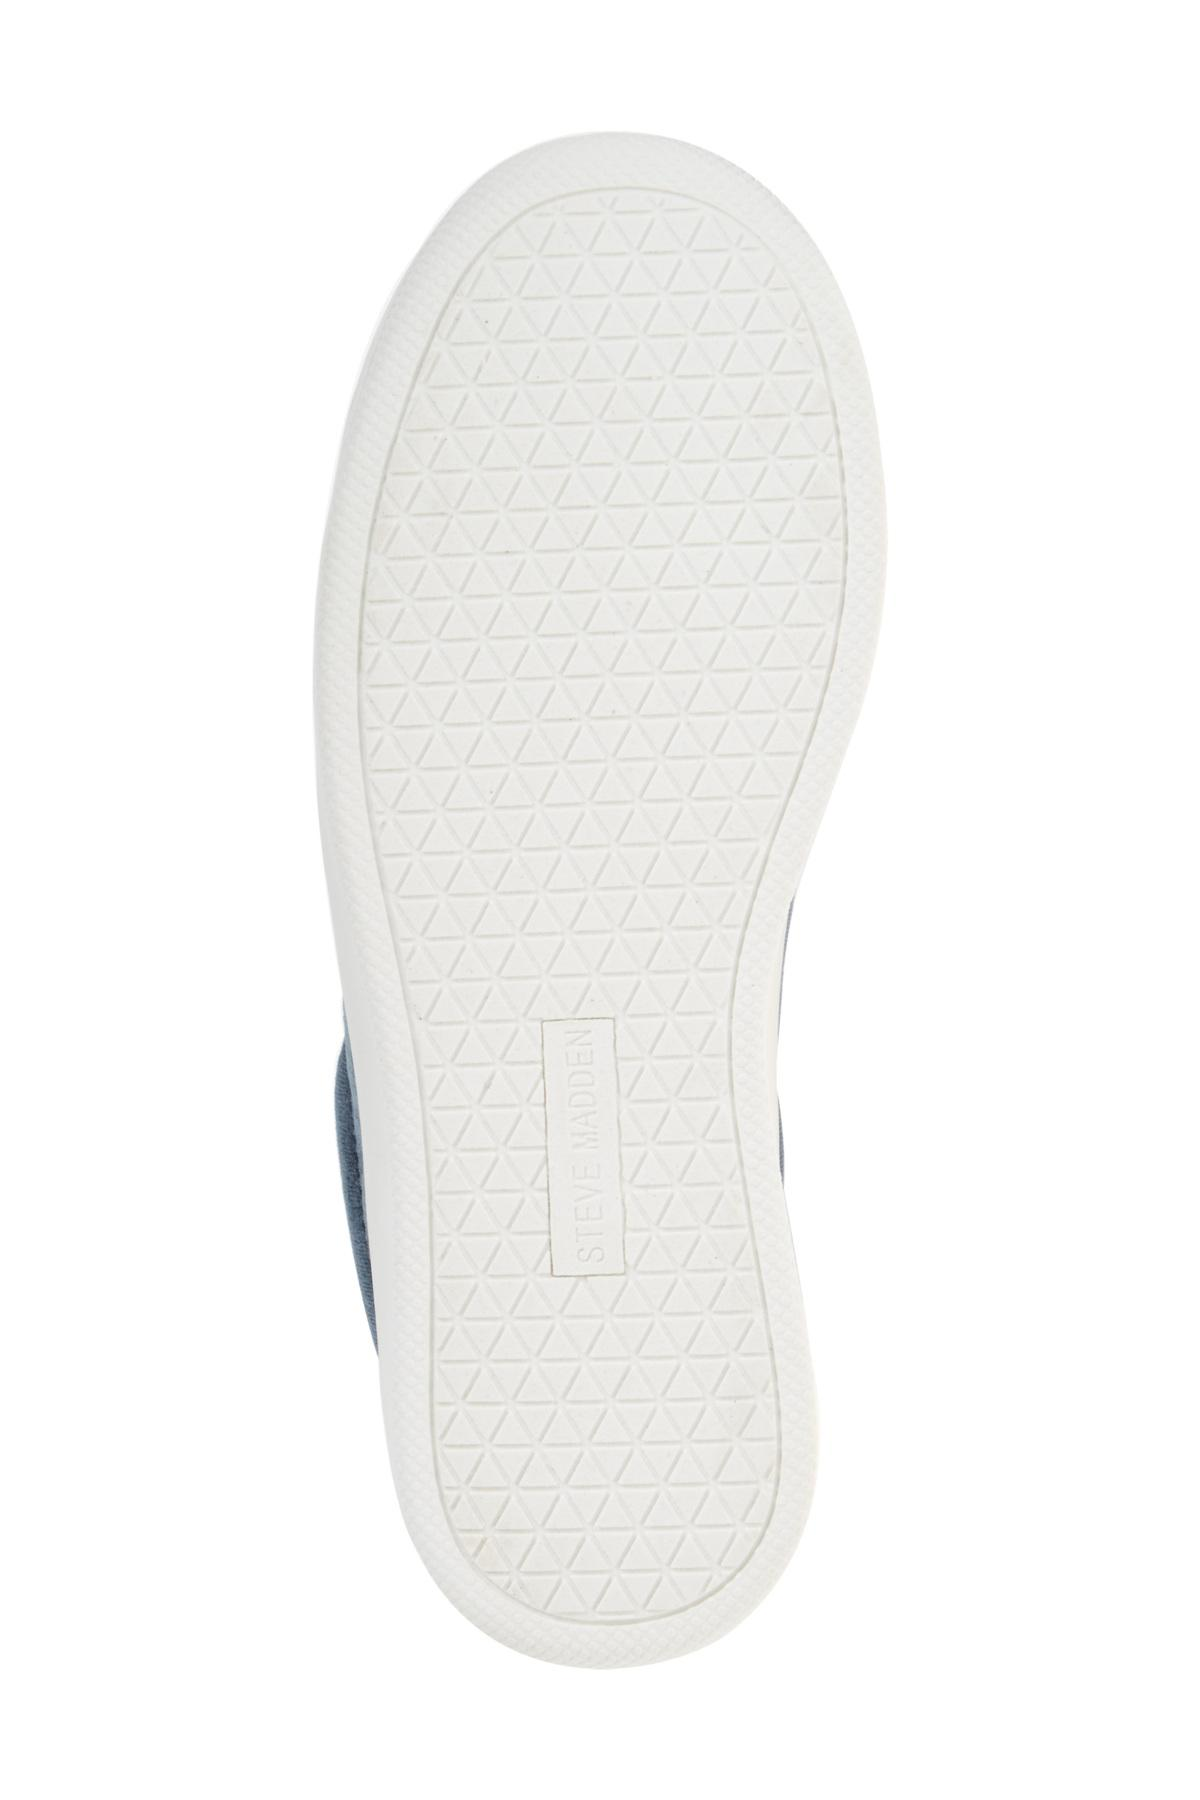 0337907faa6 Gallery. Previously sold at  Nordstrom Rack · Women s Platform Sneakers ...